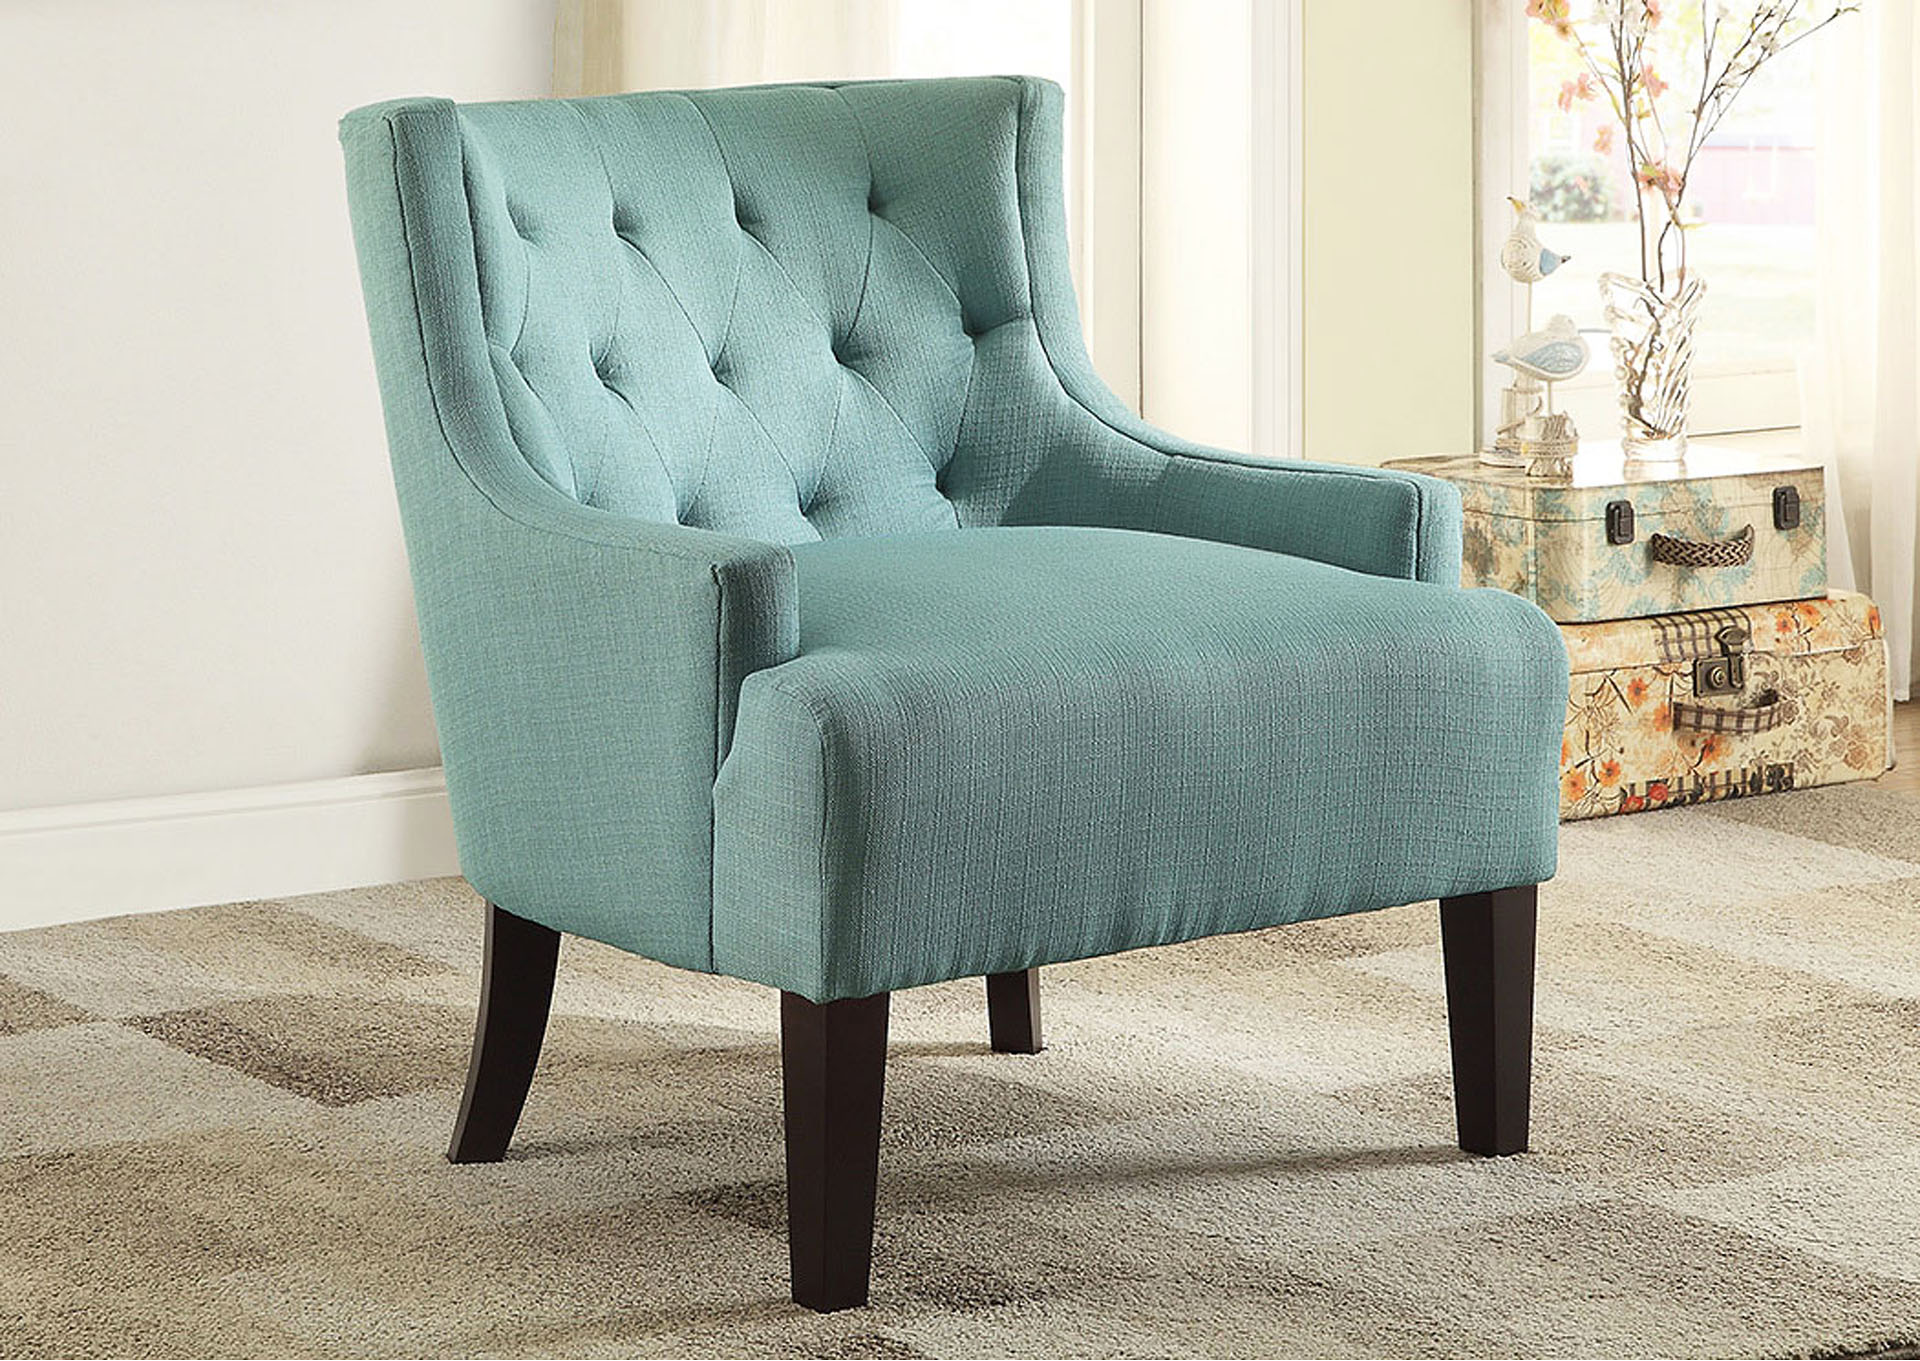 teal accent chair custom made covers brisbane kirk imports dulce homelegance